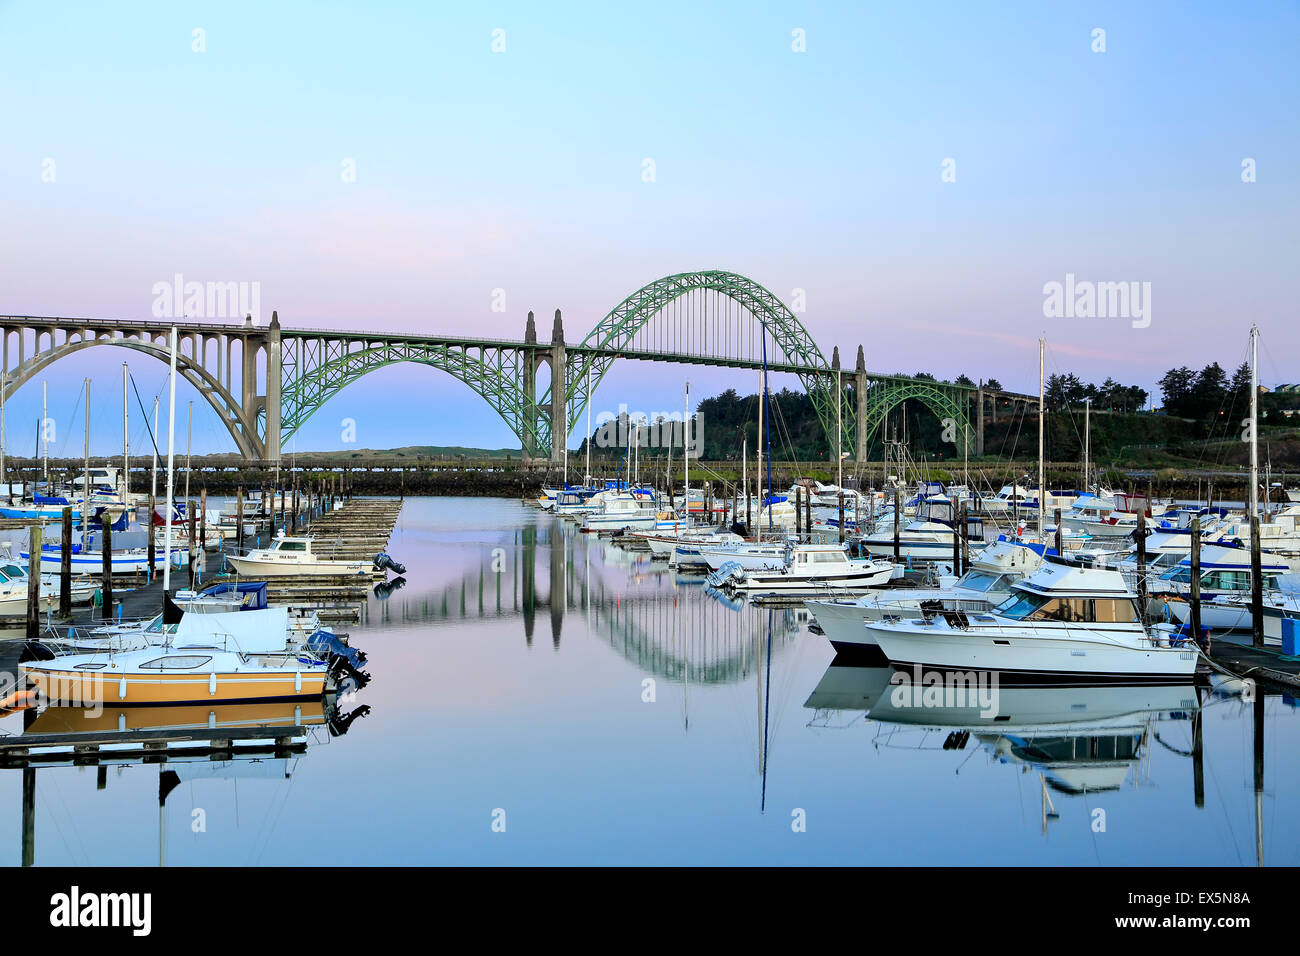 Boats moored in Port of Newport Marina and Yaquina Bay Bridge, Newport, Oregon USA Stock Photo